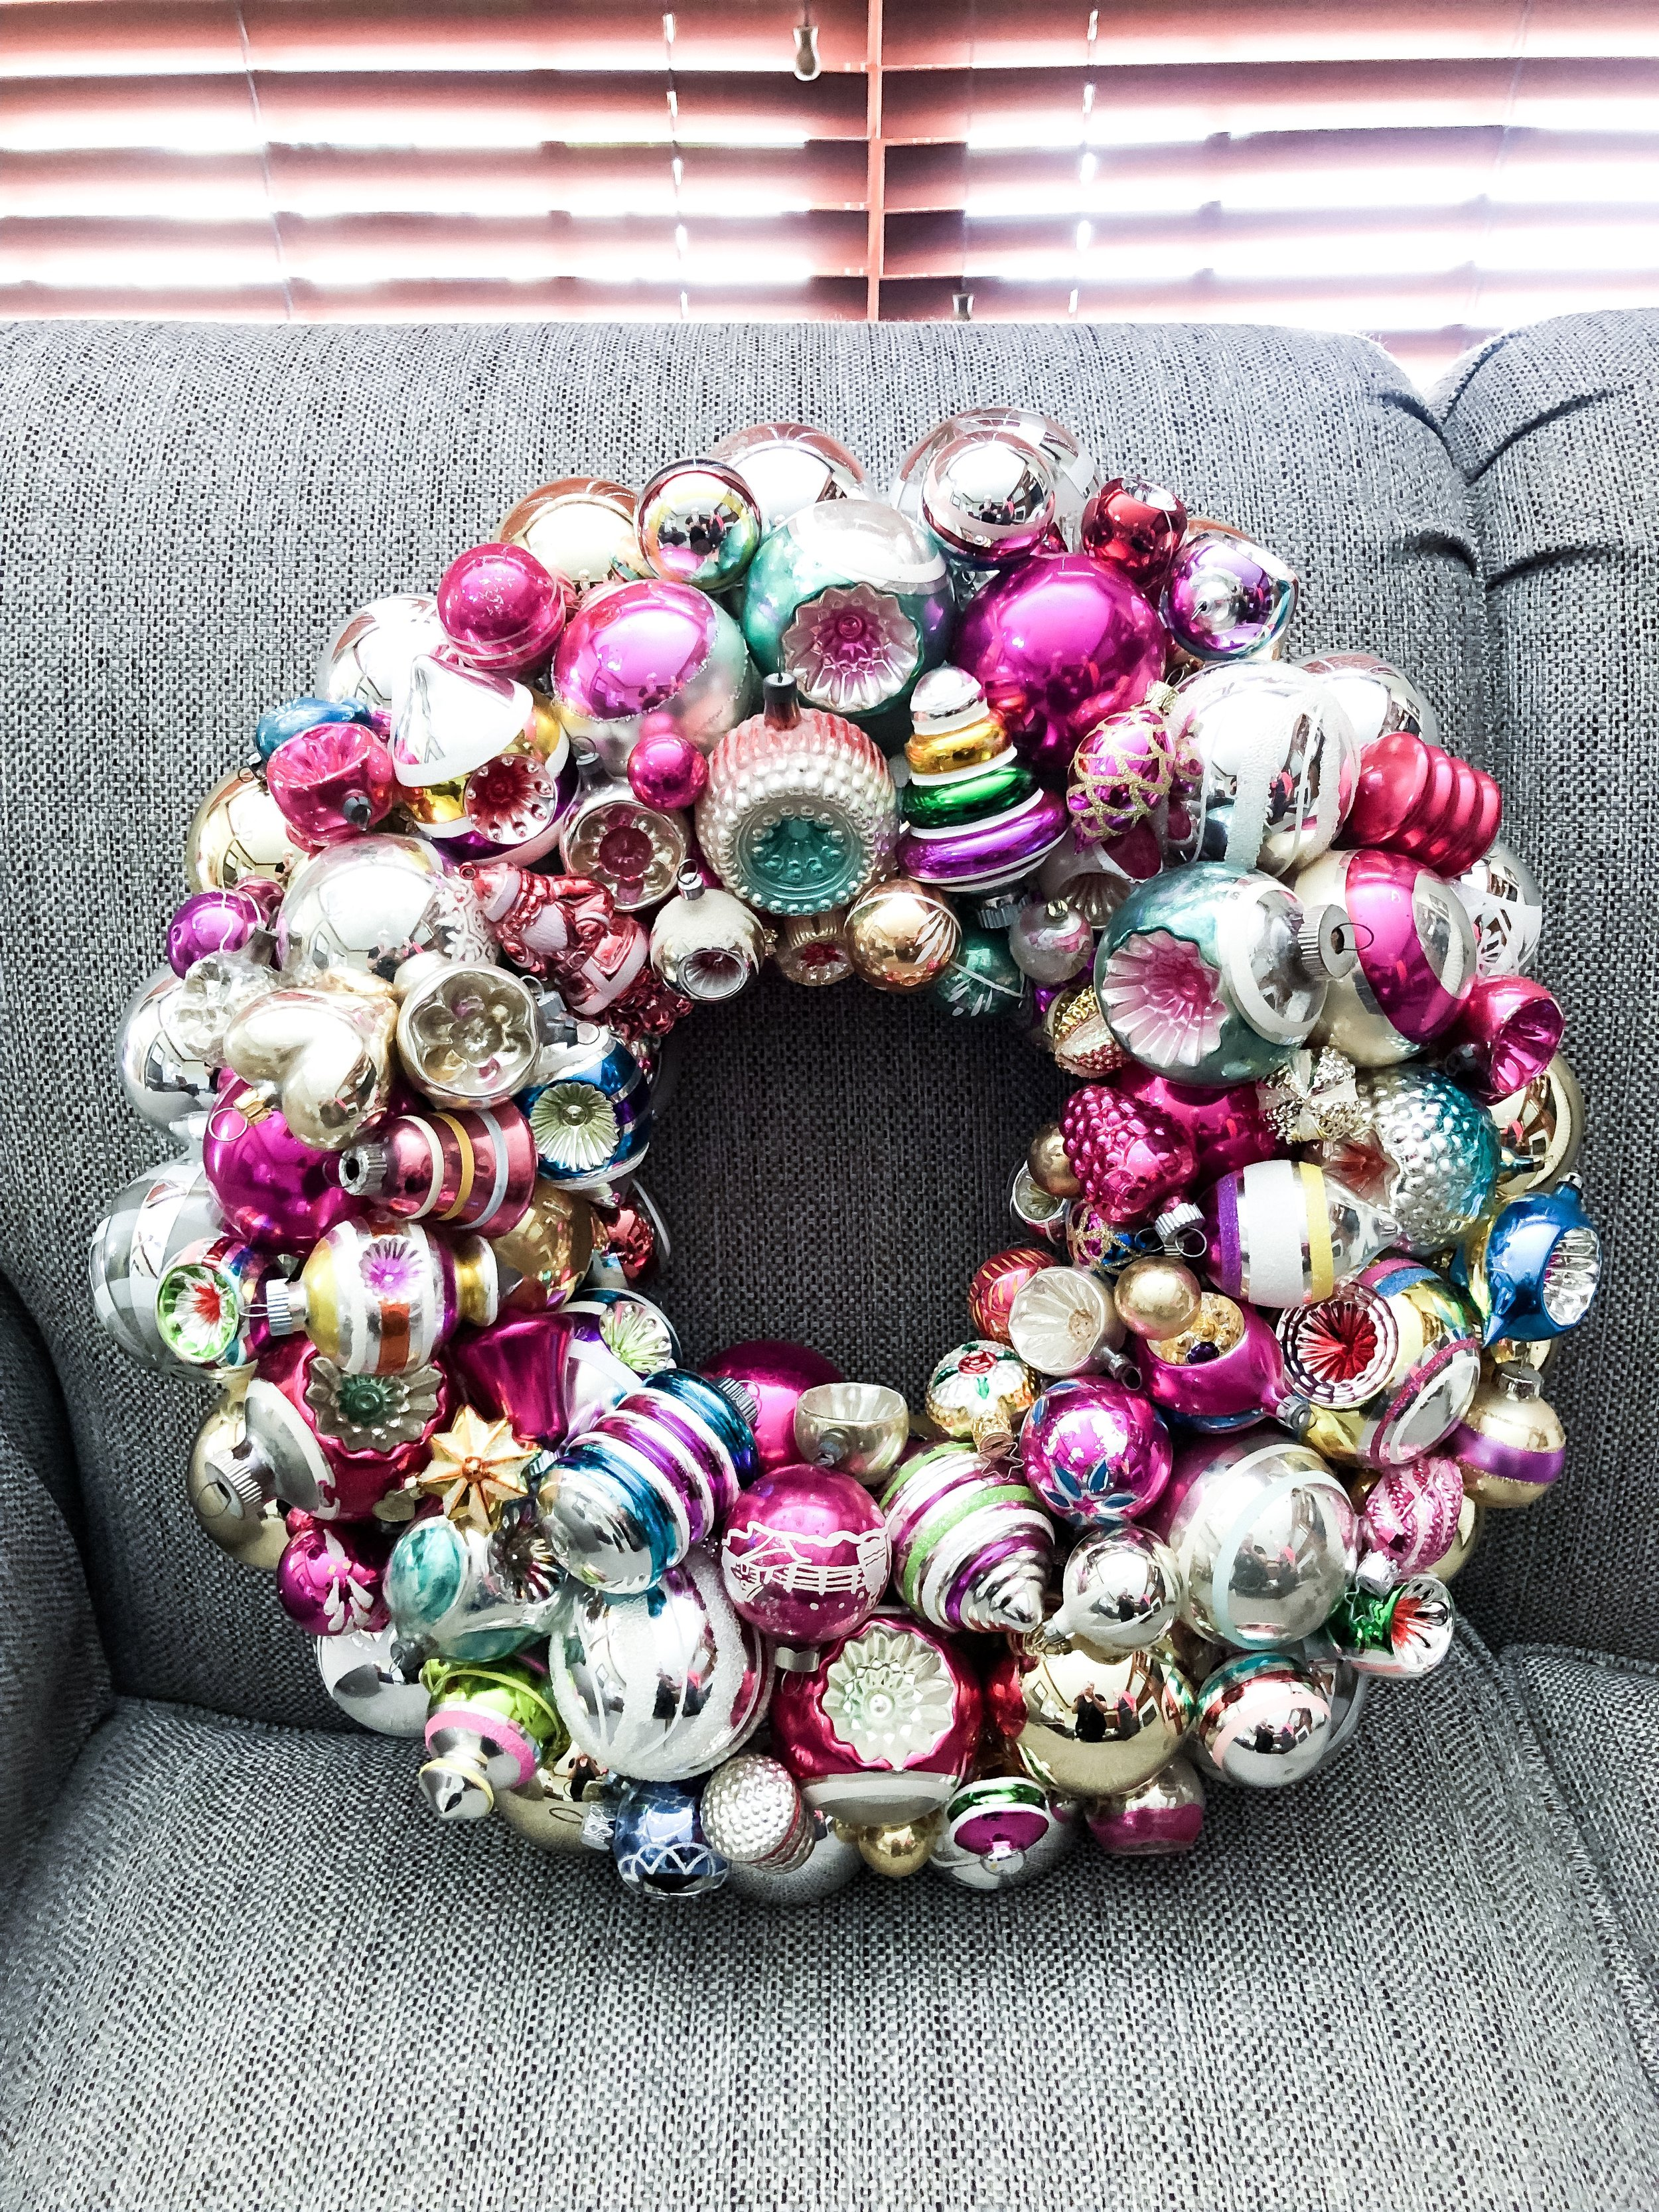 I made this beautiful Shiny Brite Christmas ornament wreath for a client using her own collection.